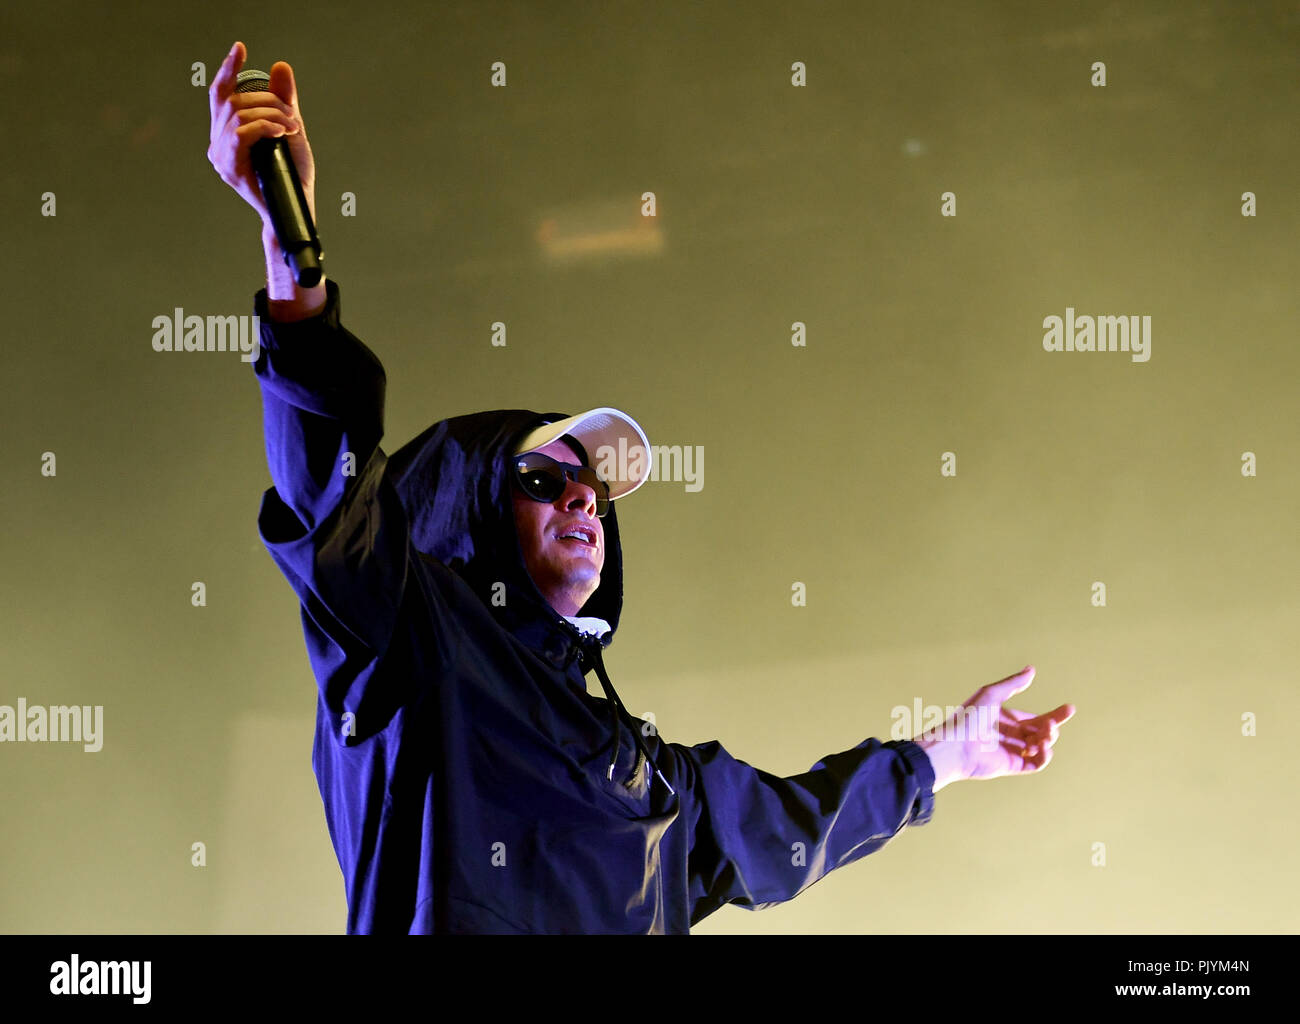 Berlin, Germany. 09th Sep, 2018. The musician Trettmann is on stage at the music festival Lollapalooza on the grounds of the Olympic Park. Credit: Britta Pedersen/dpa-Zentralbild/dpa/Alamy Live News - Stock Image